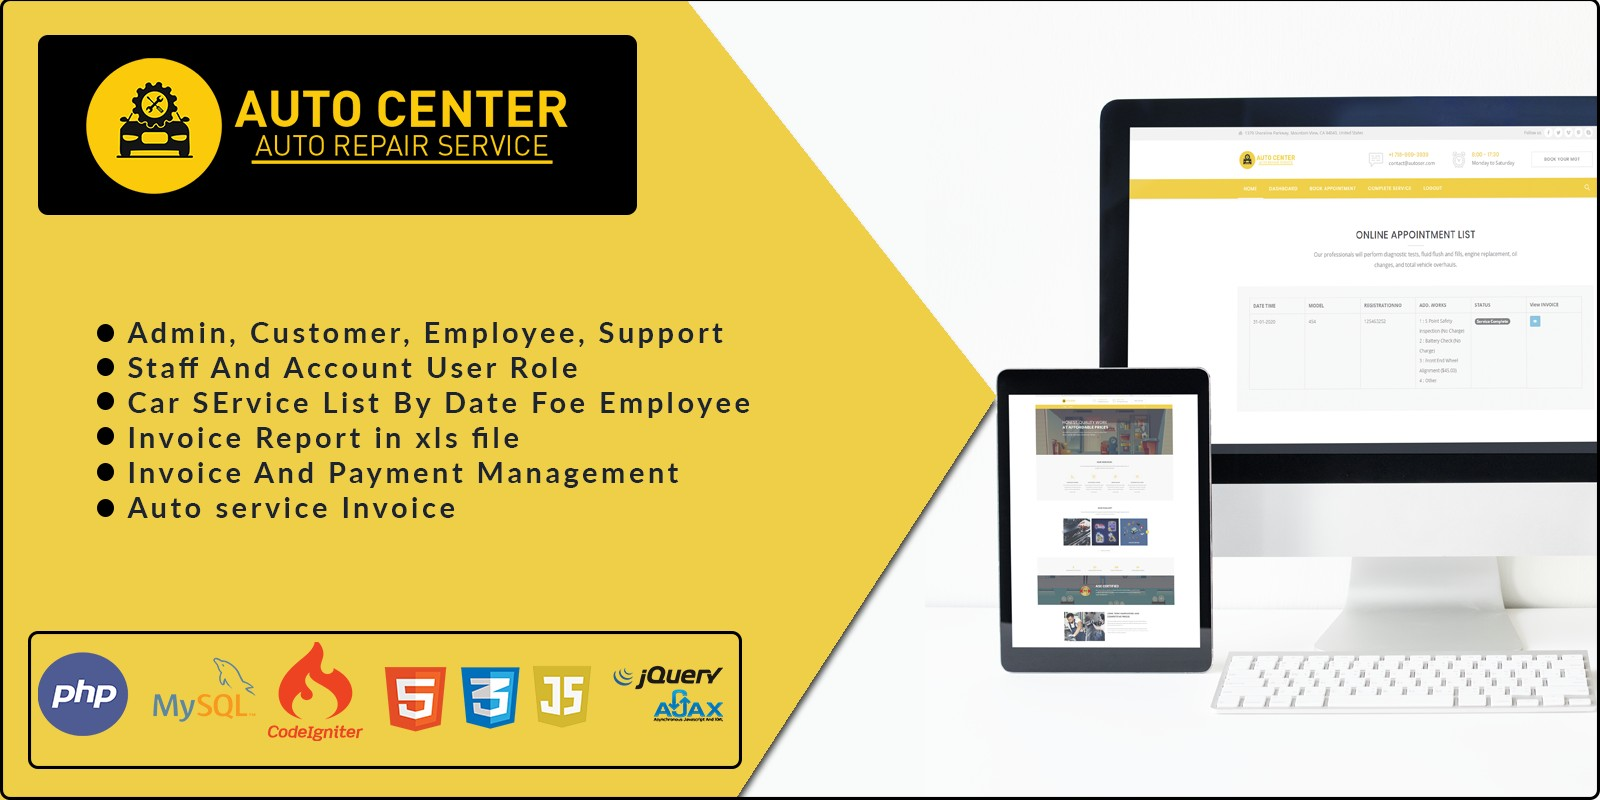 Auto Center - Garage Management Software PHP